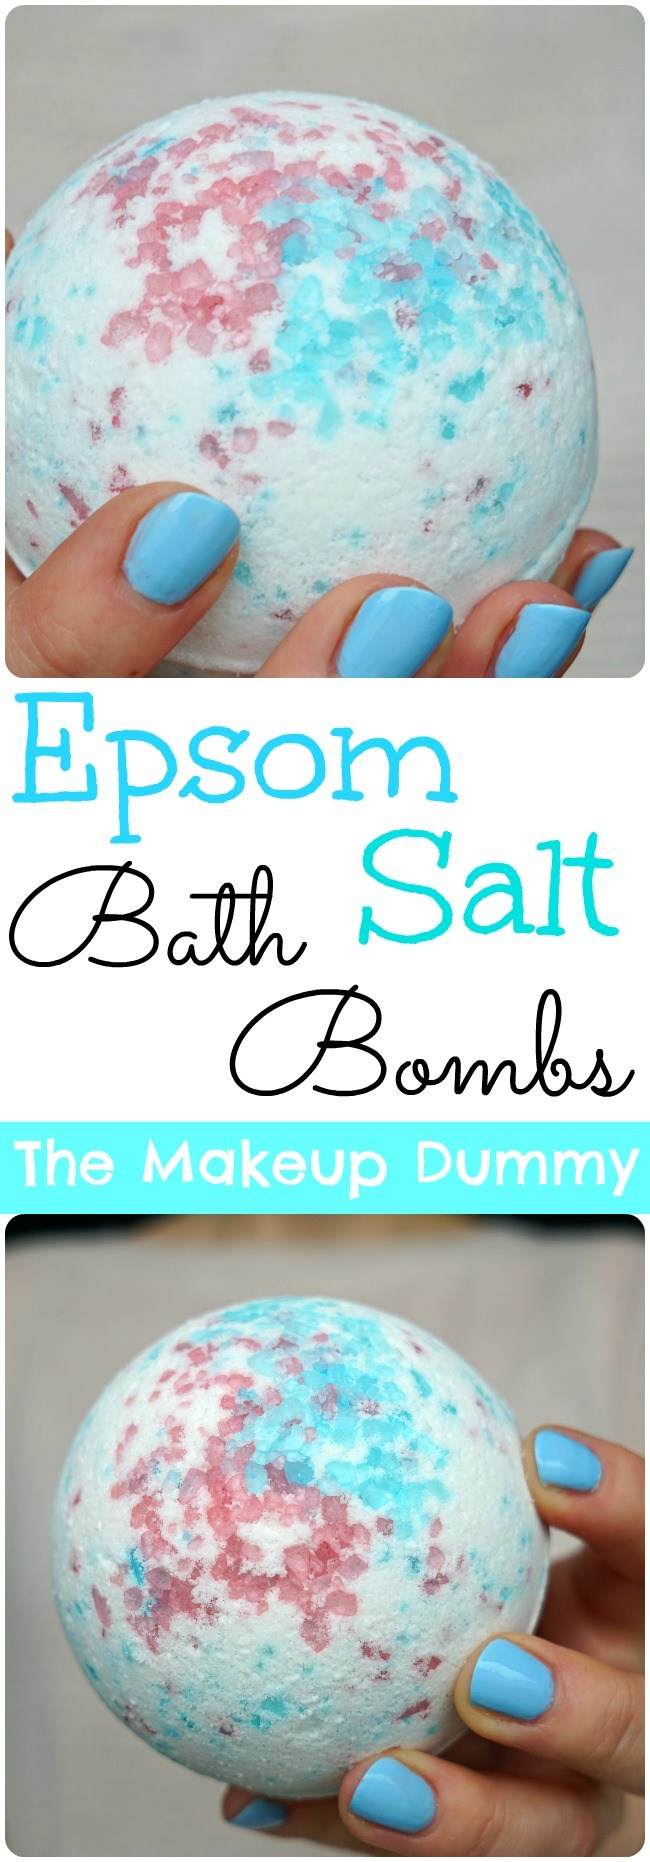 Epsom salt Bath Bomb